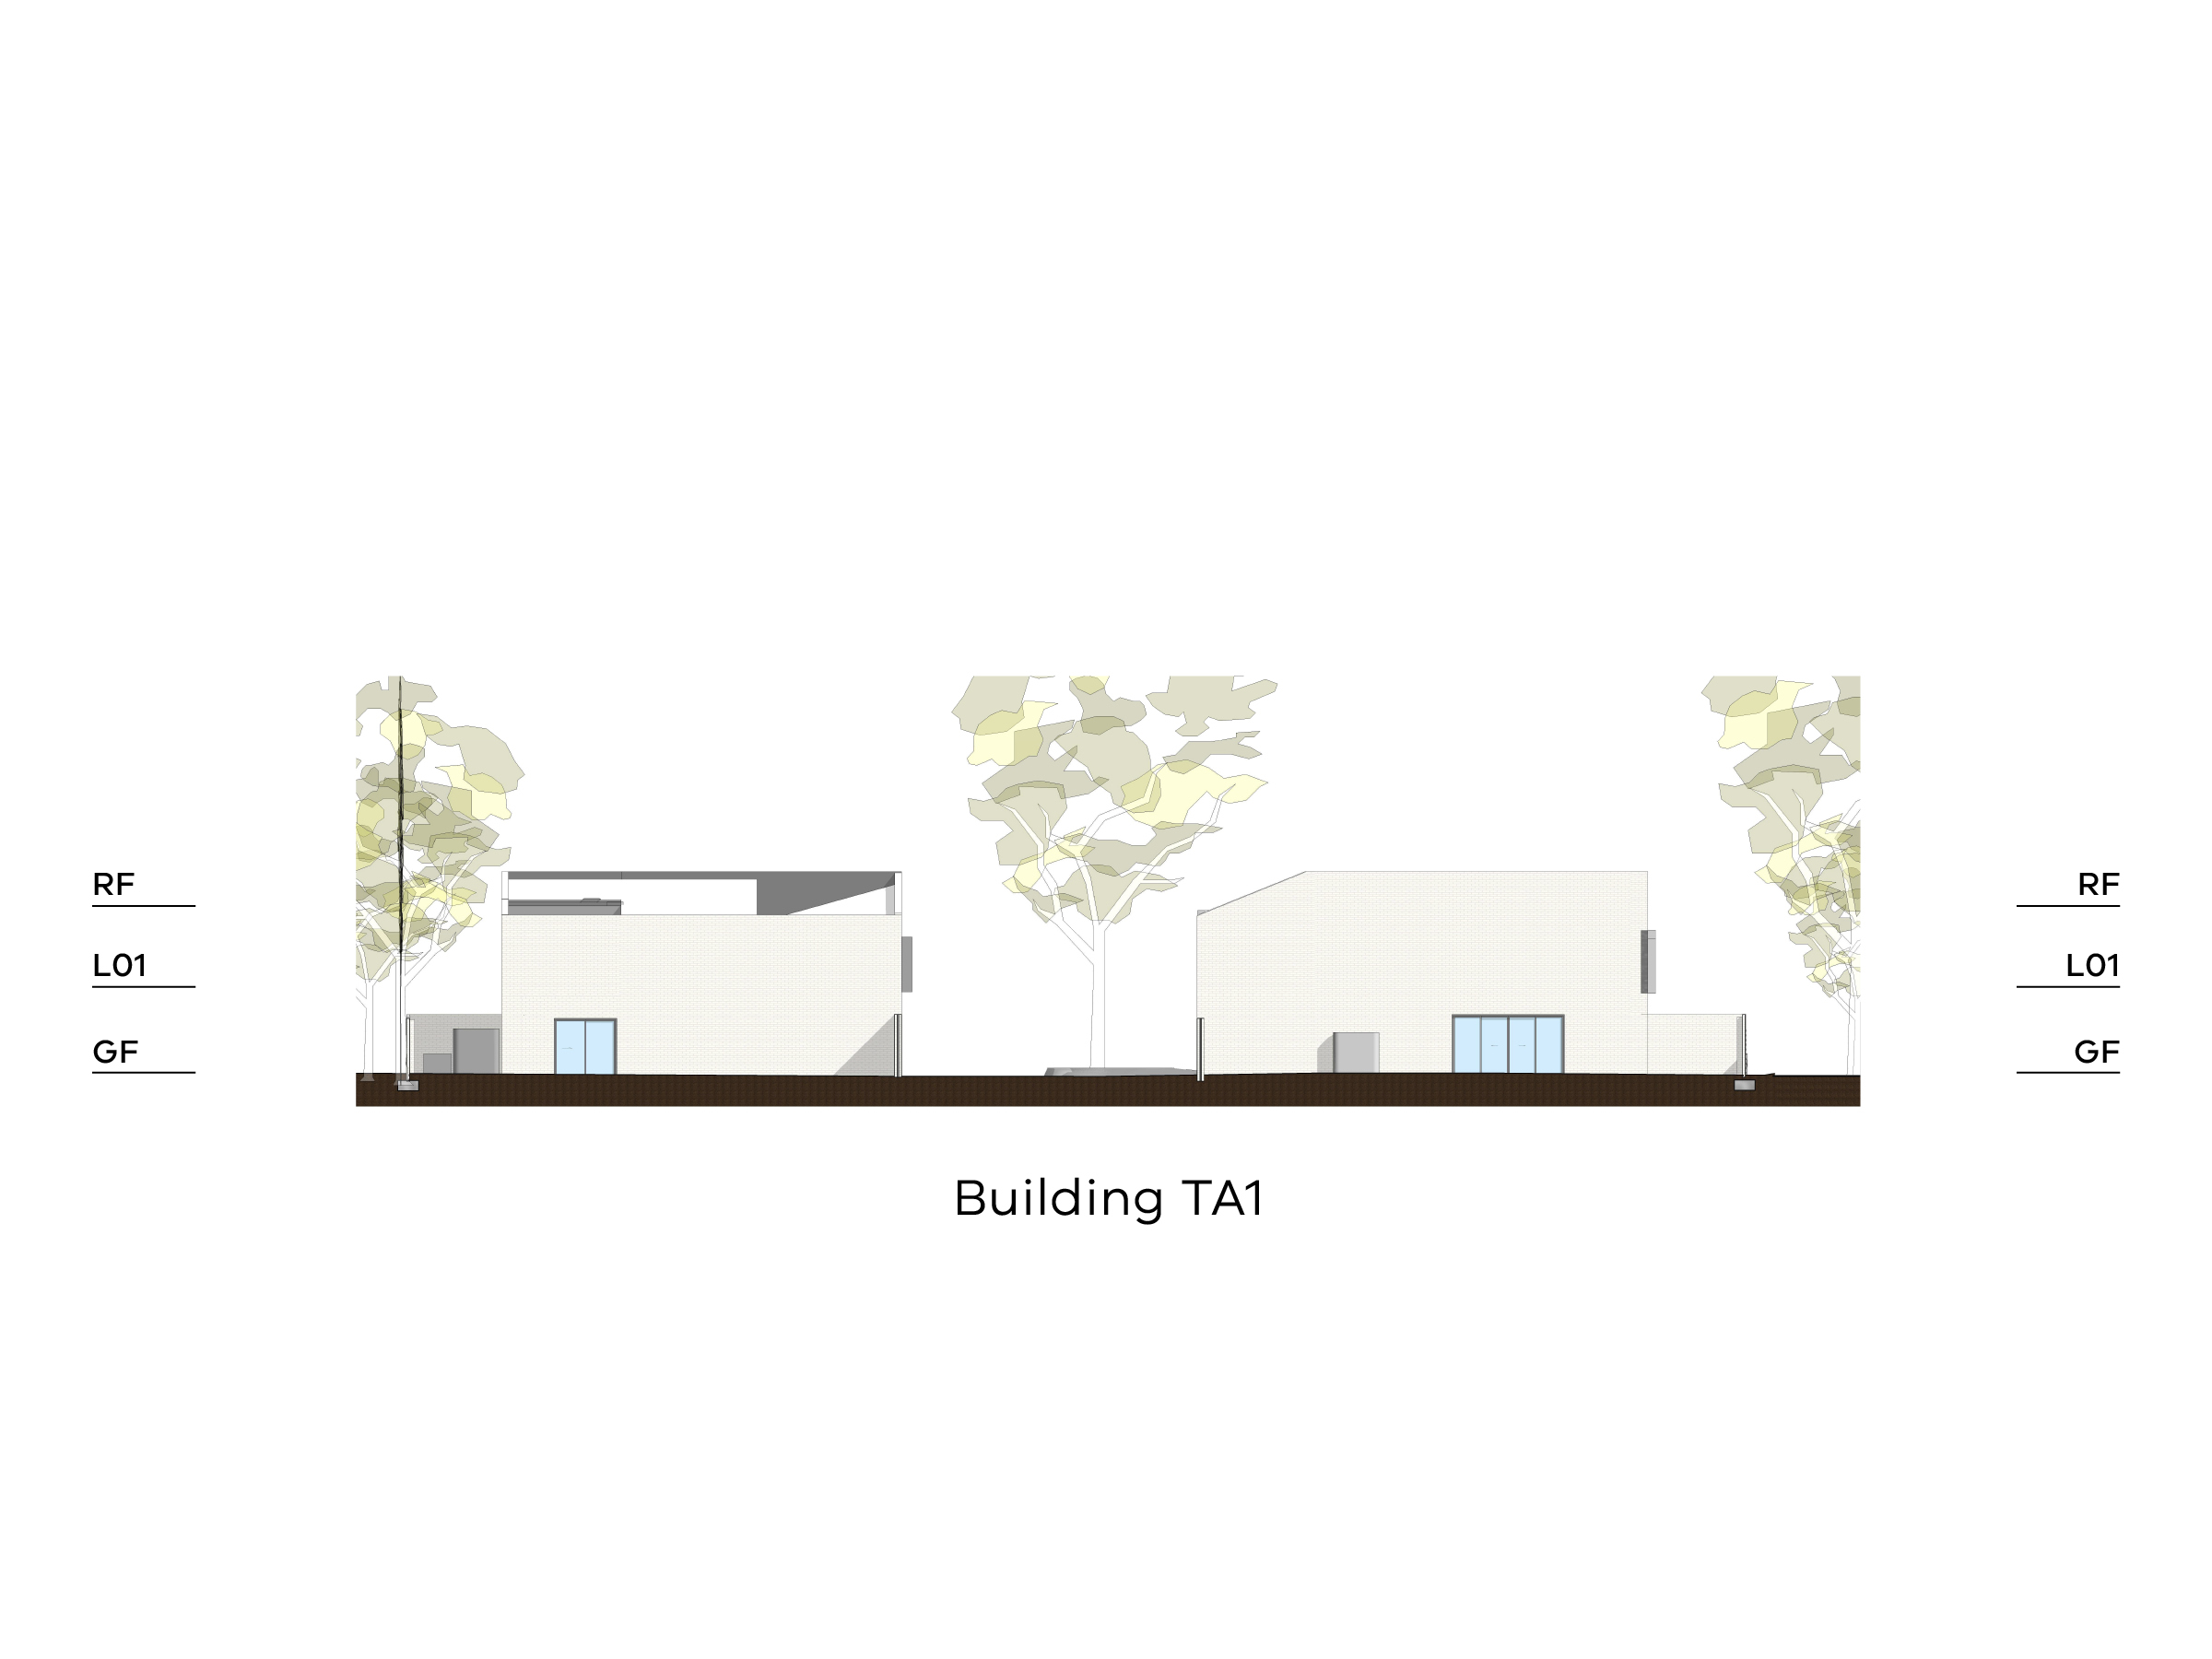 Diagram showing the height of building TA1 as seen from the site looking towards Tarakan Street. Building TA1 has a ground floor, a level 1 and a sloped roof.